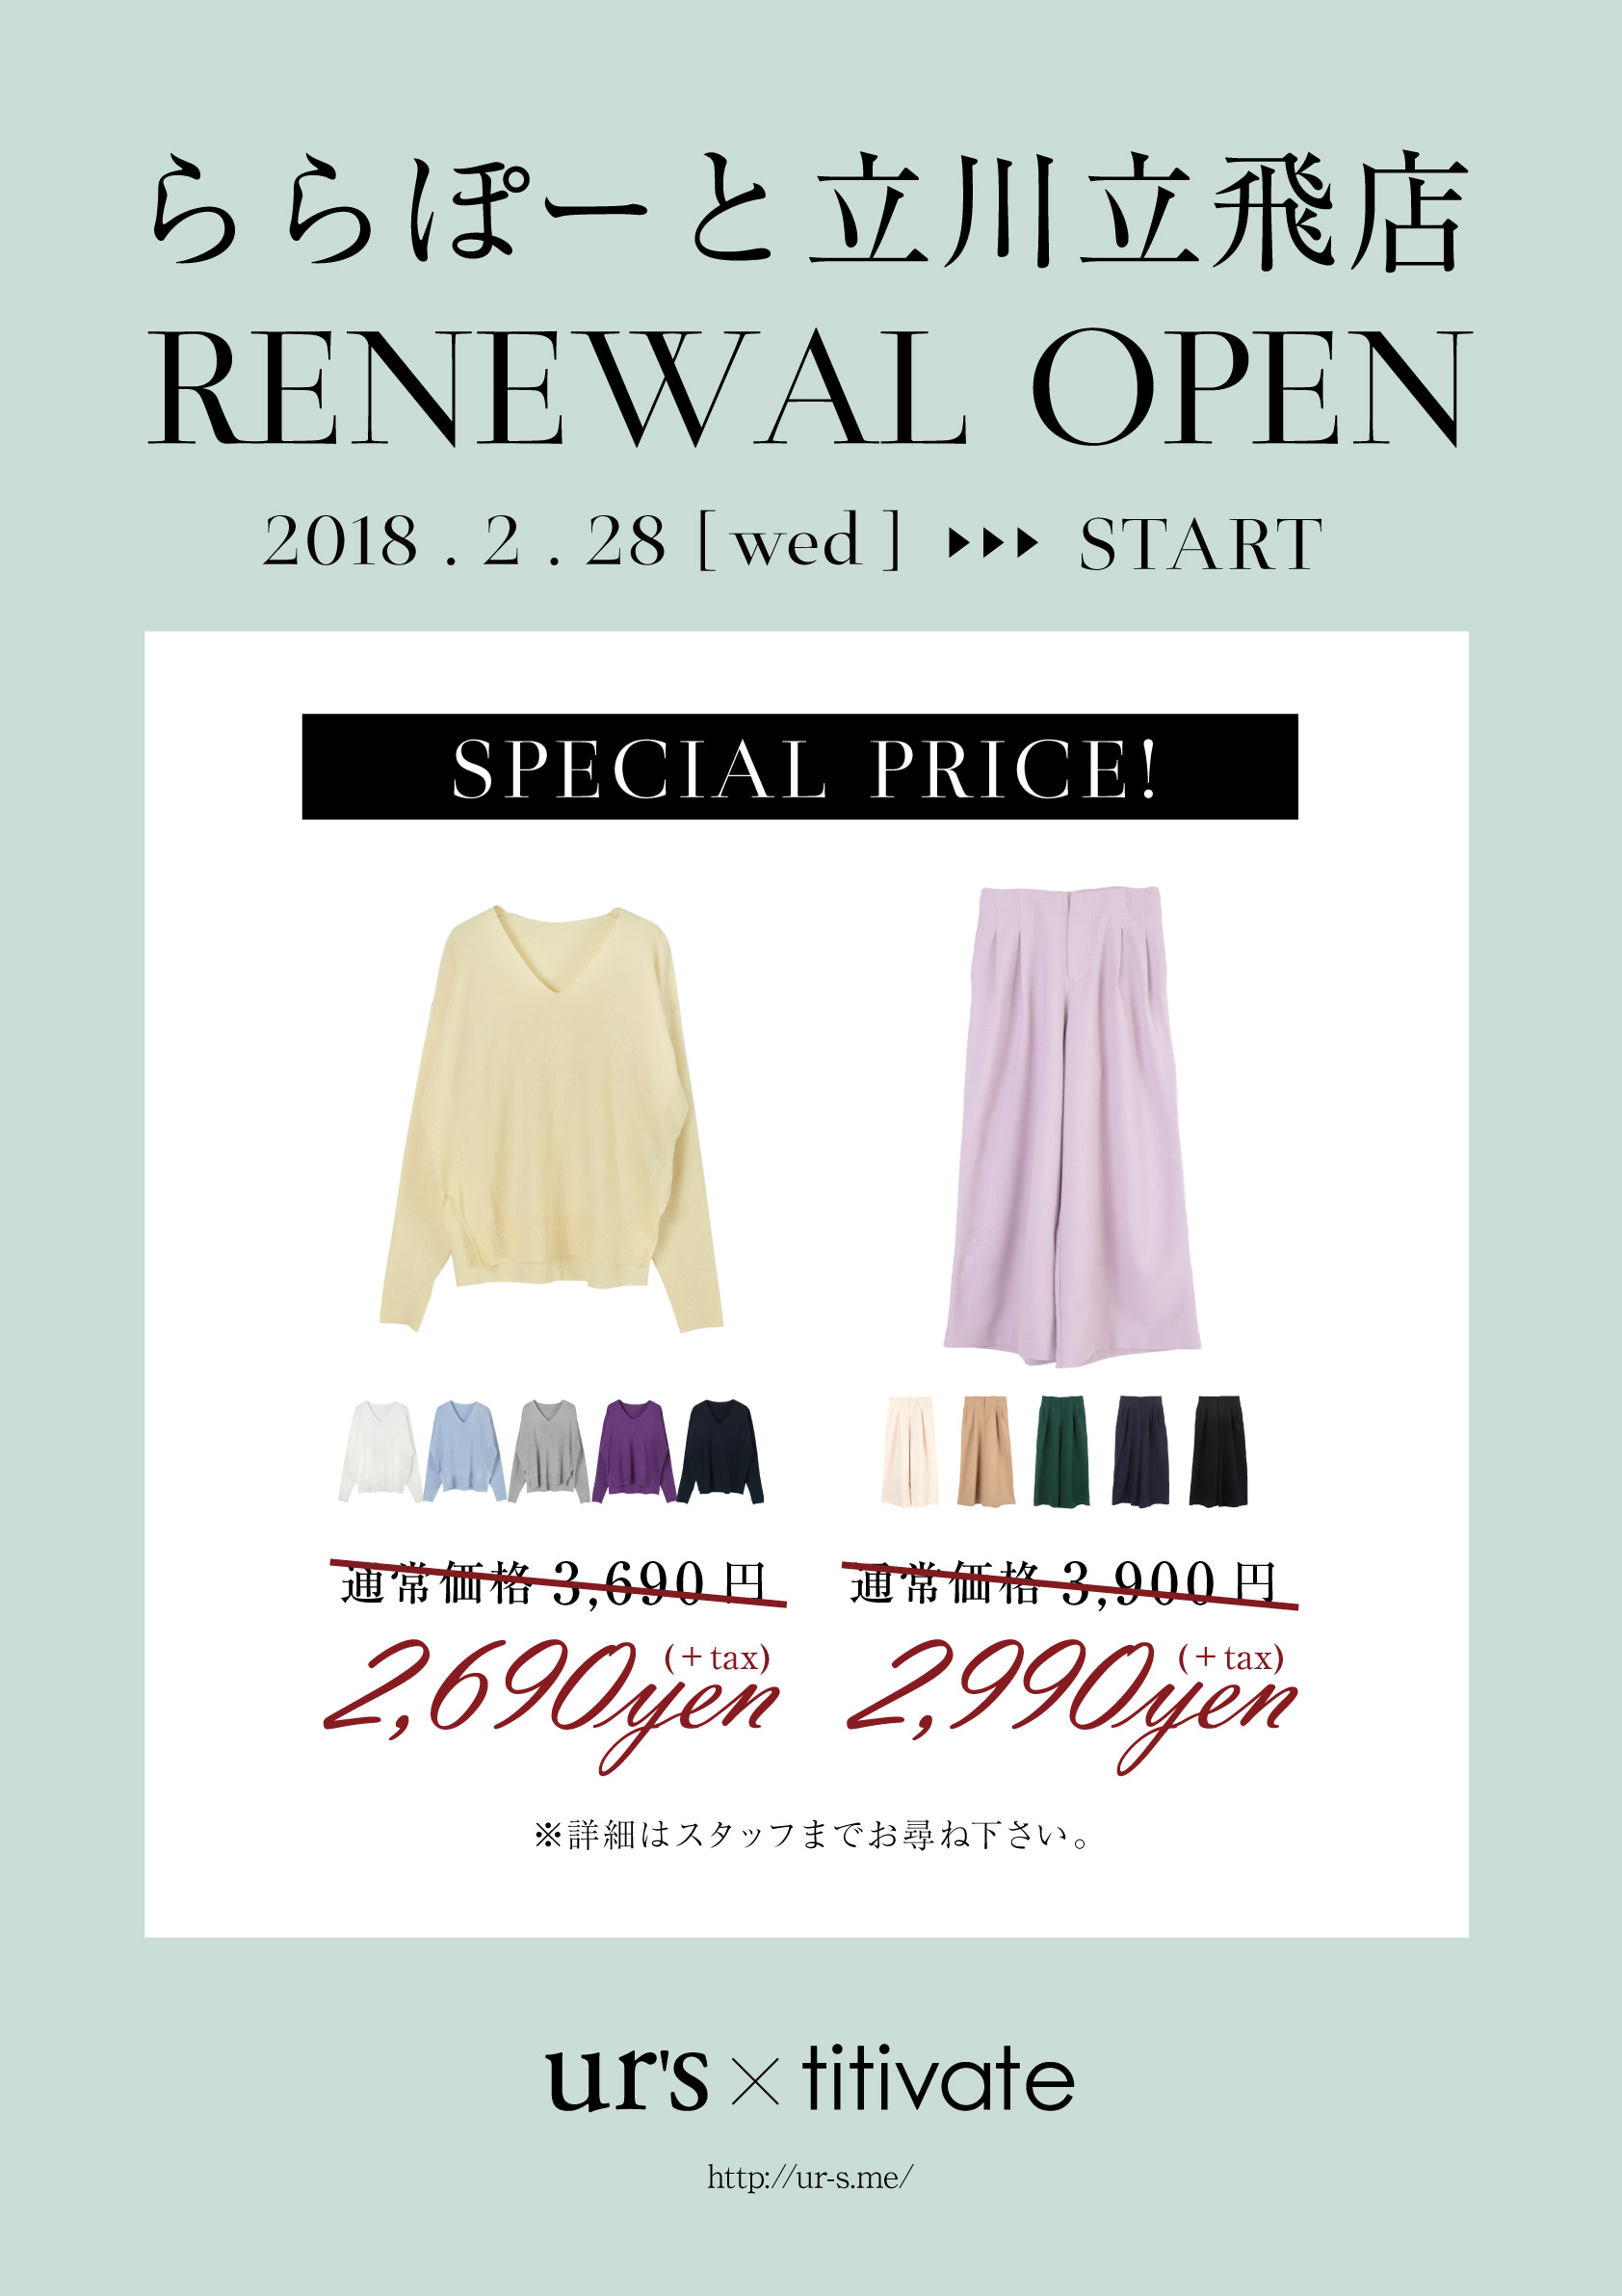 RENEWAL OPEN SPECIAL PRICE!